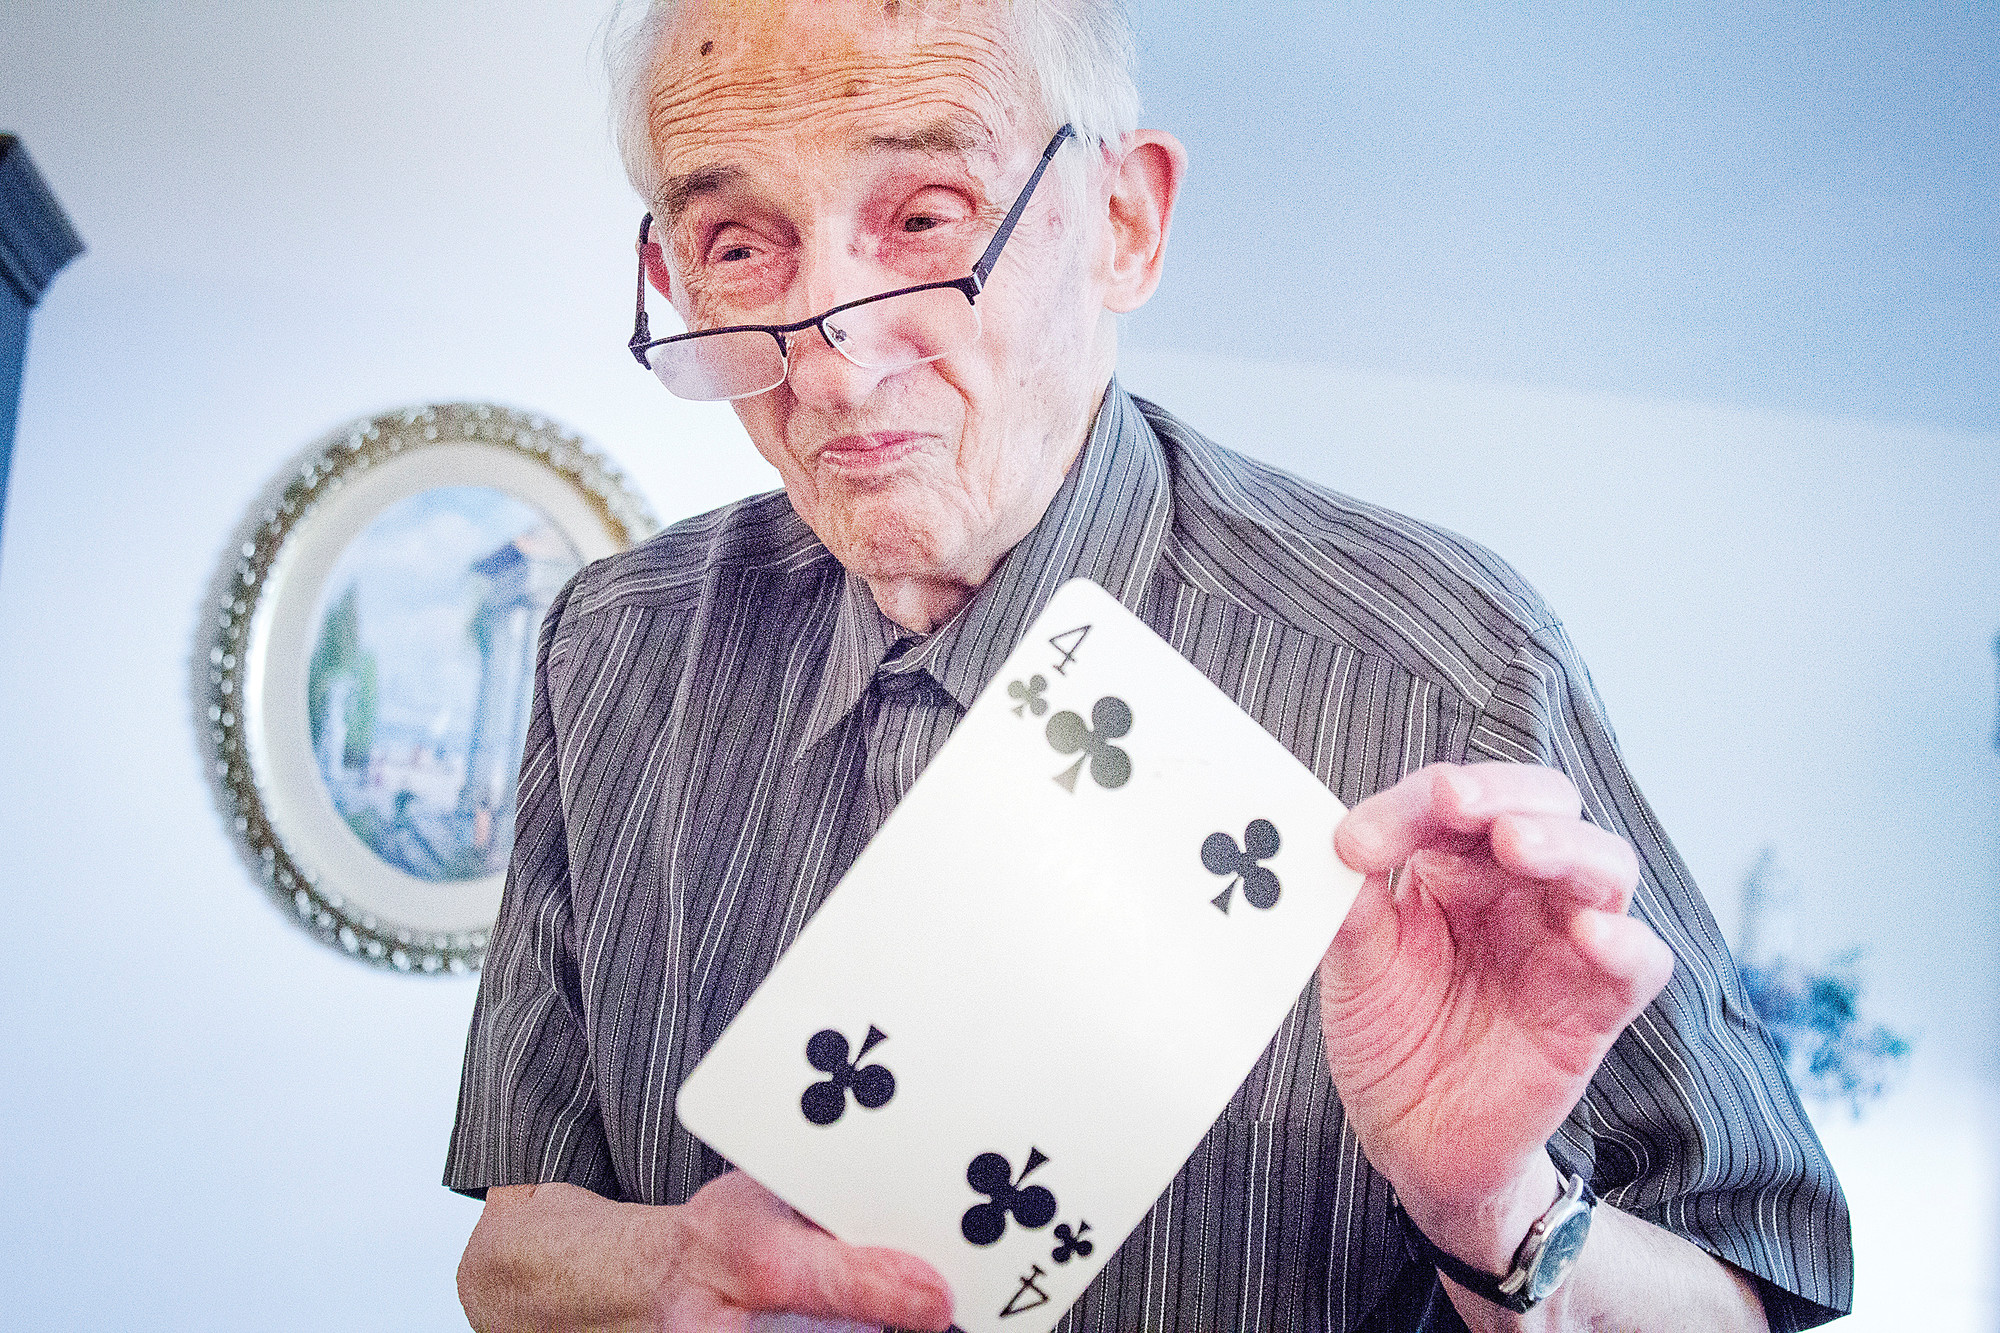 Jerry Oppenheimer, 93, the Society of American Magicians' Magician of the Year, demonstrates one of his card tricks at his home on June 19.